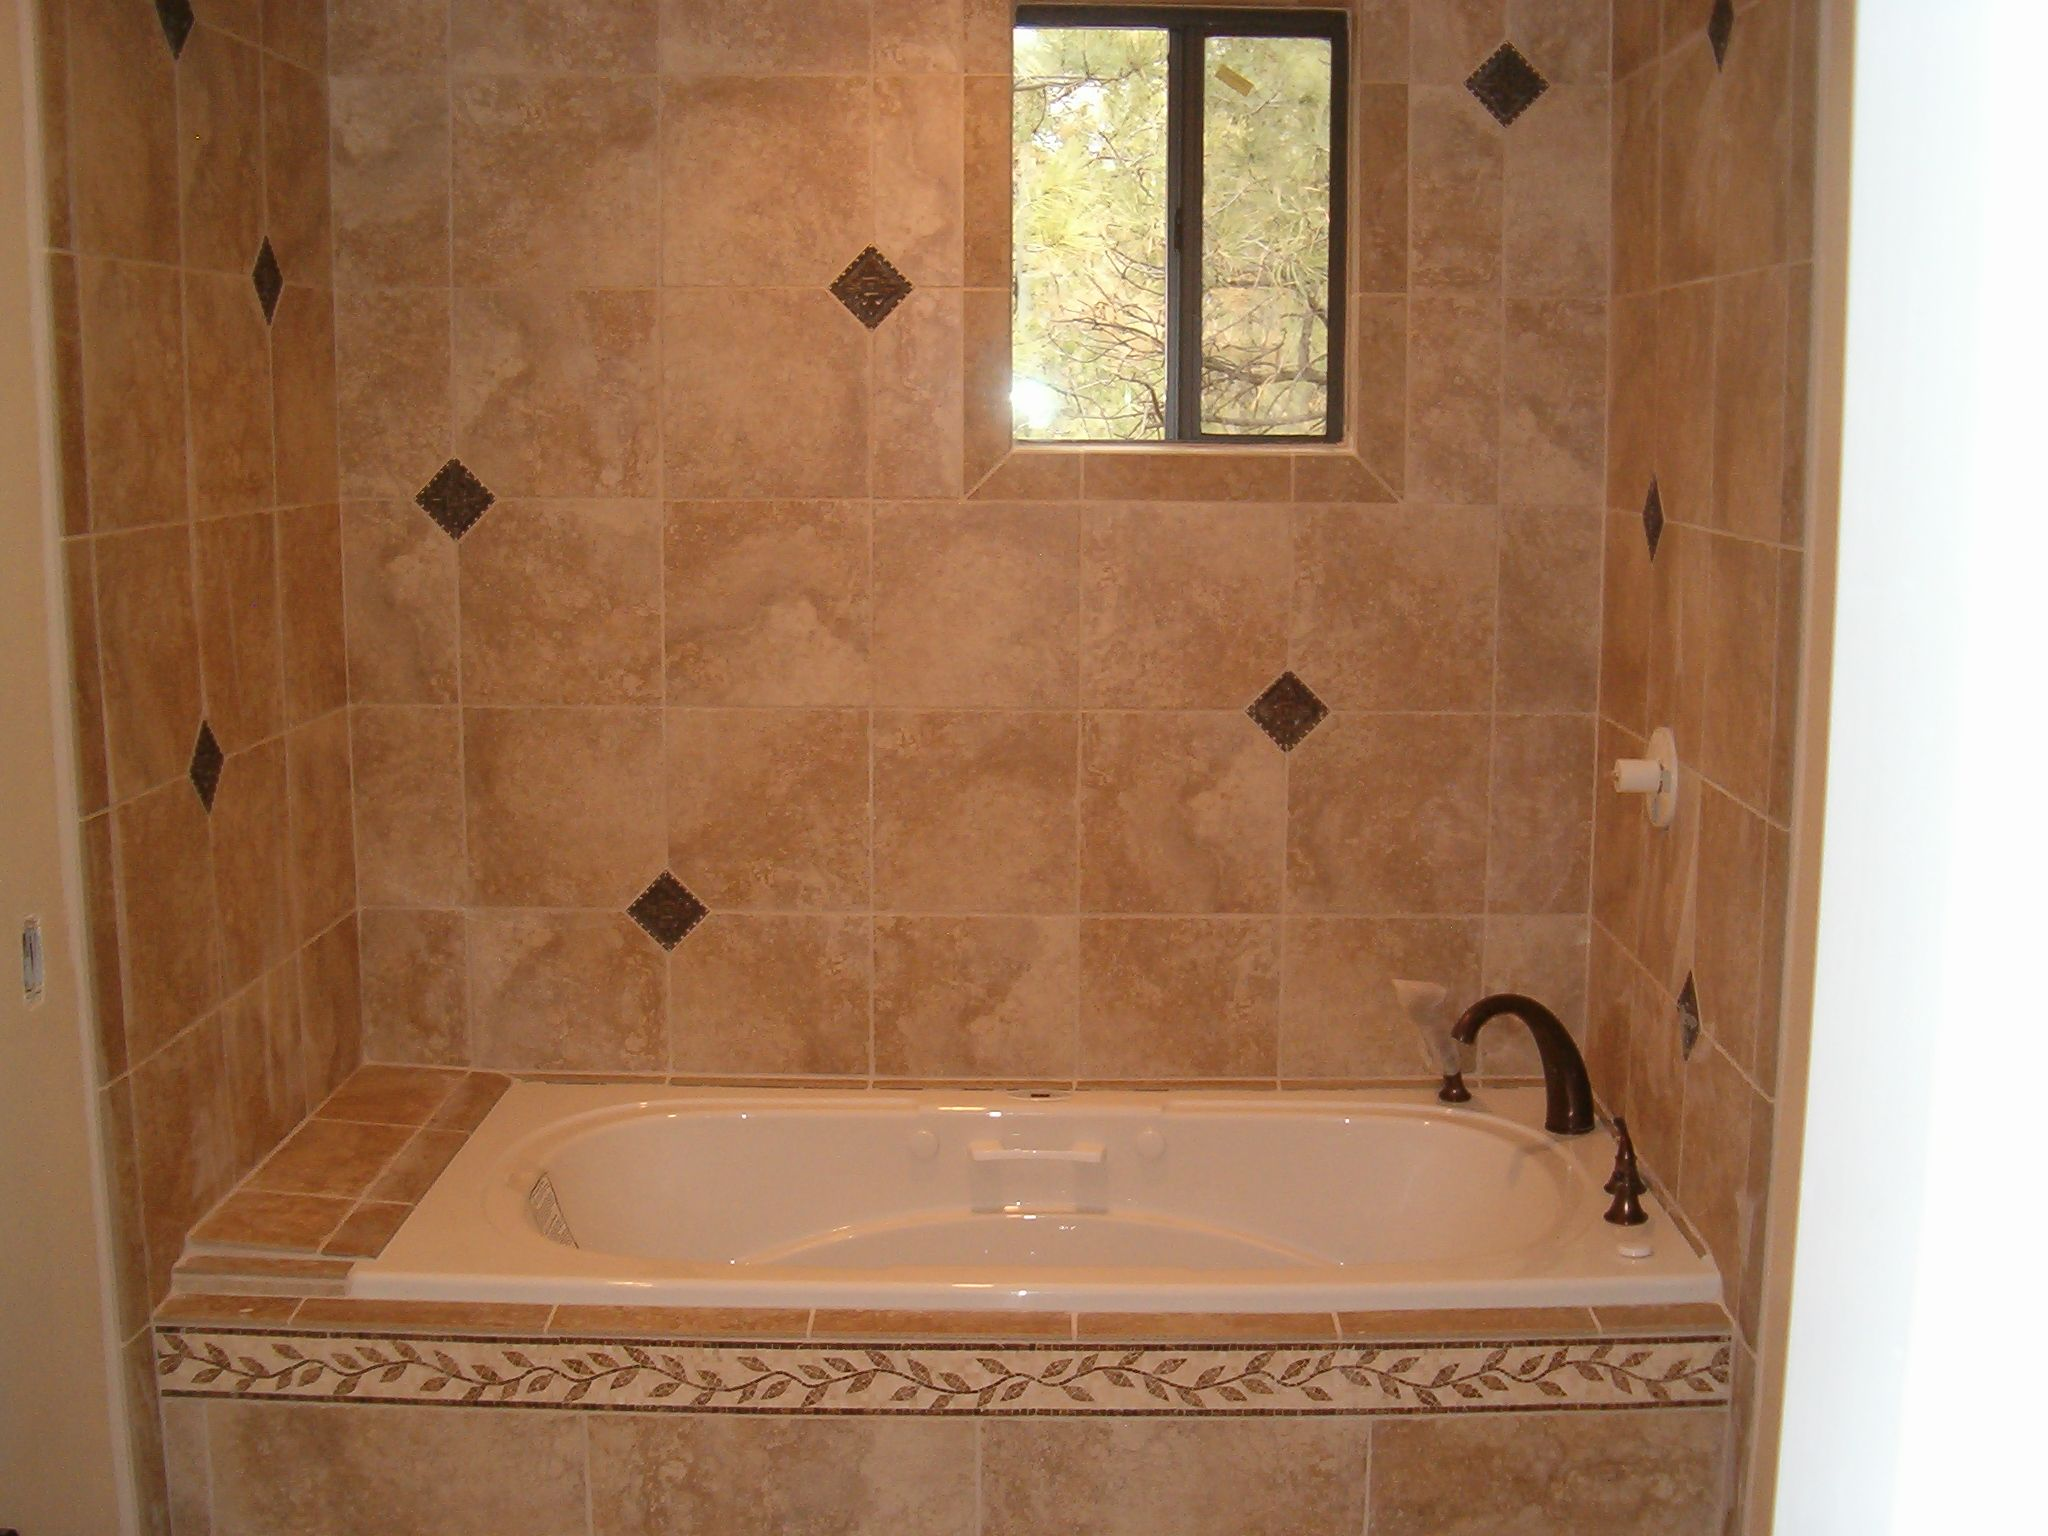 Tile floor images all around floorings bathroom tub for Bathroom tub designs